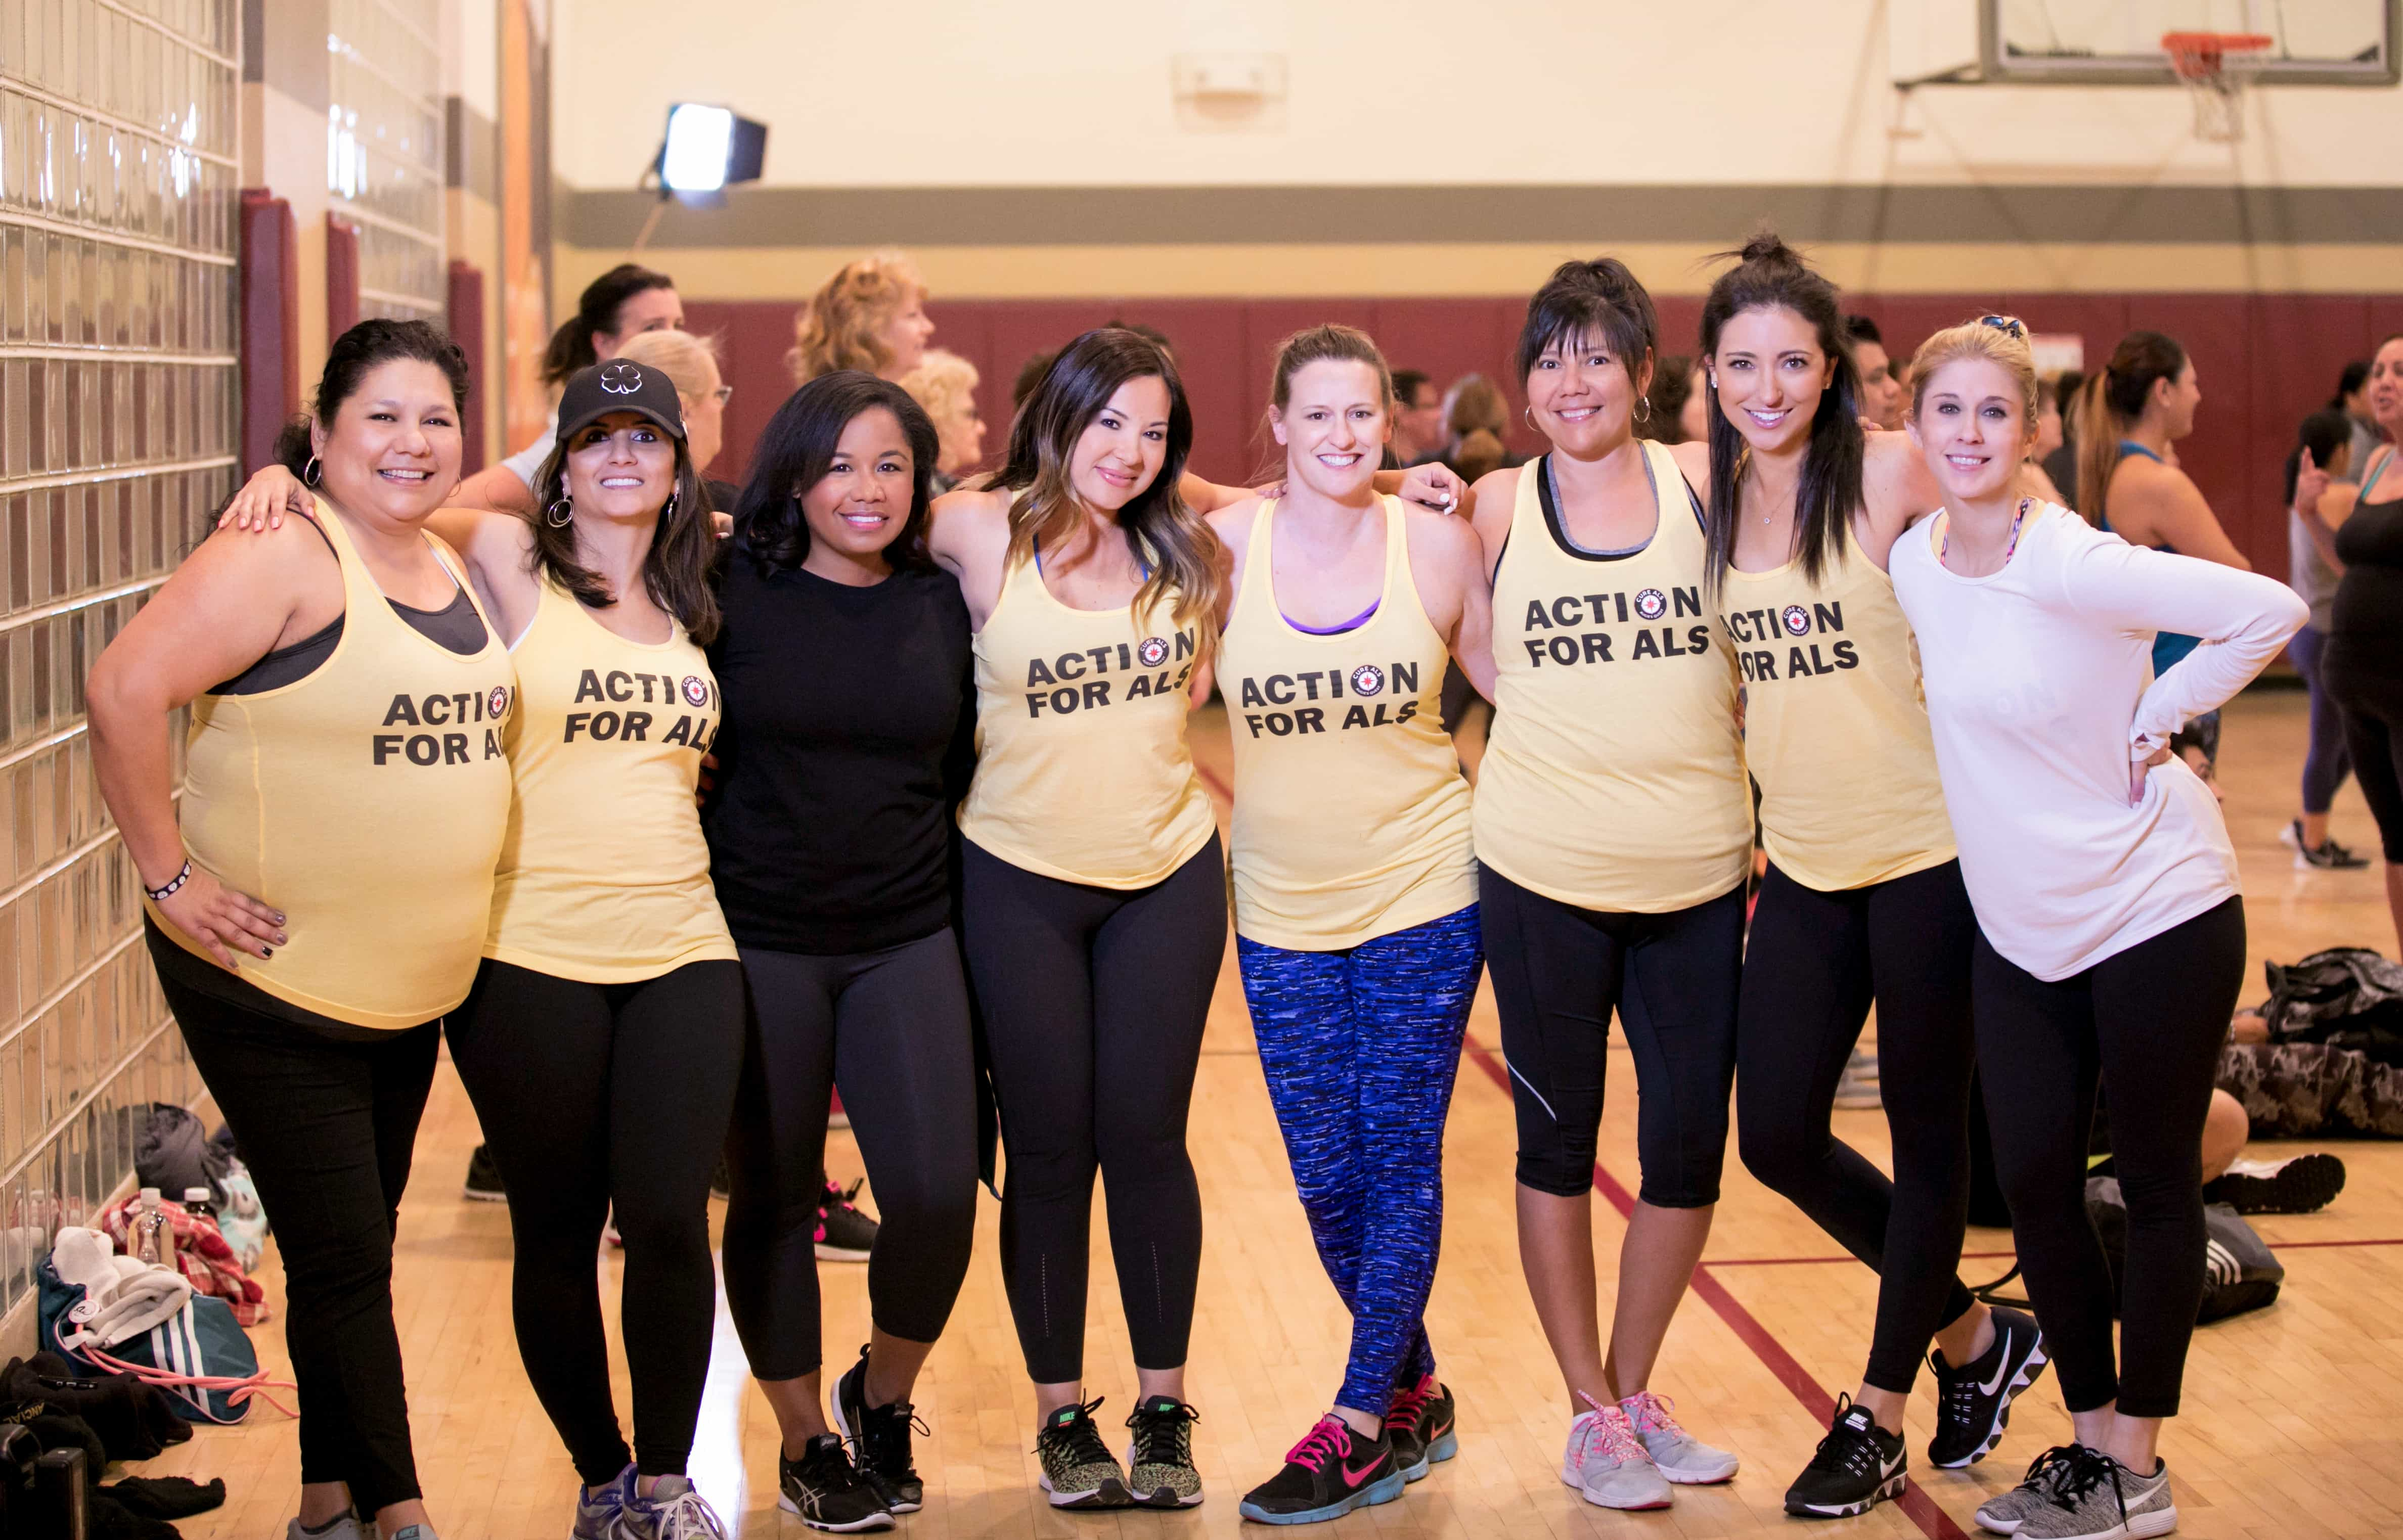 group fitness glass, Action for ALS, LA Fitness Cares, zumba class, group fitness